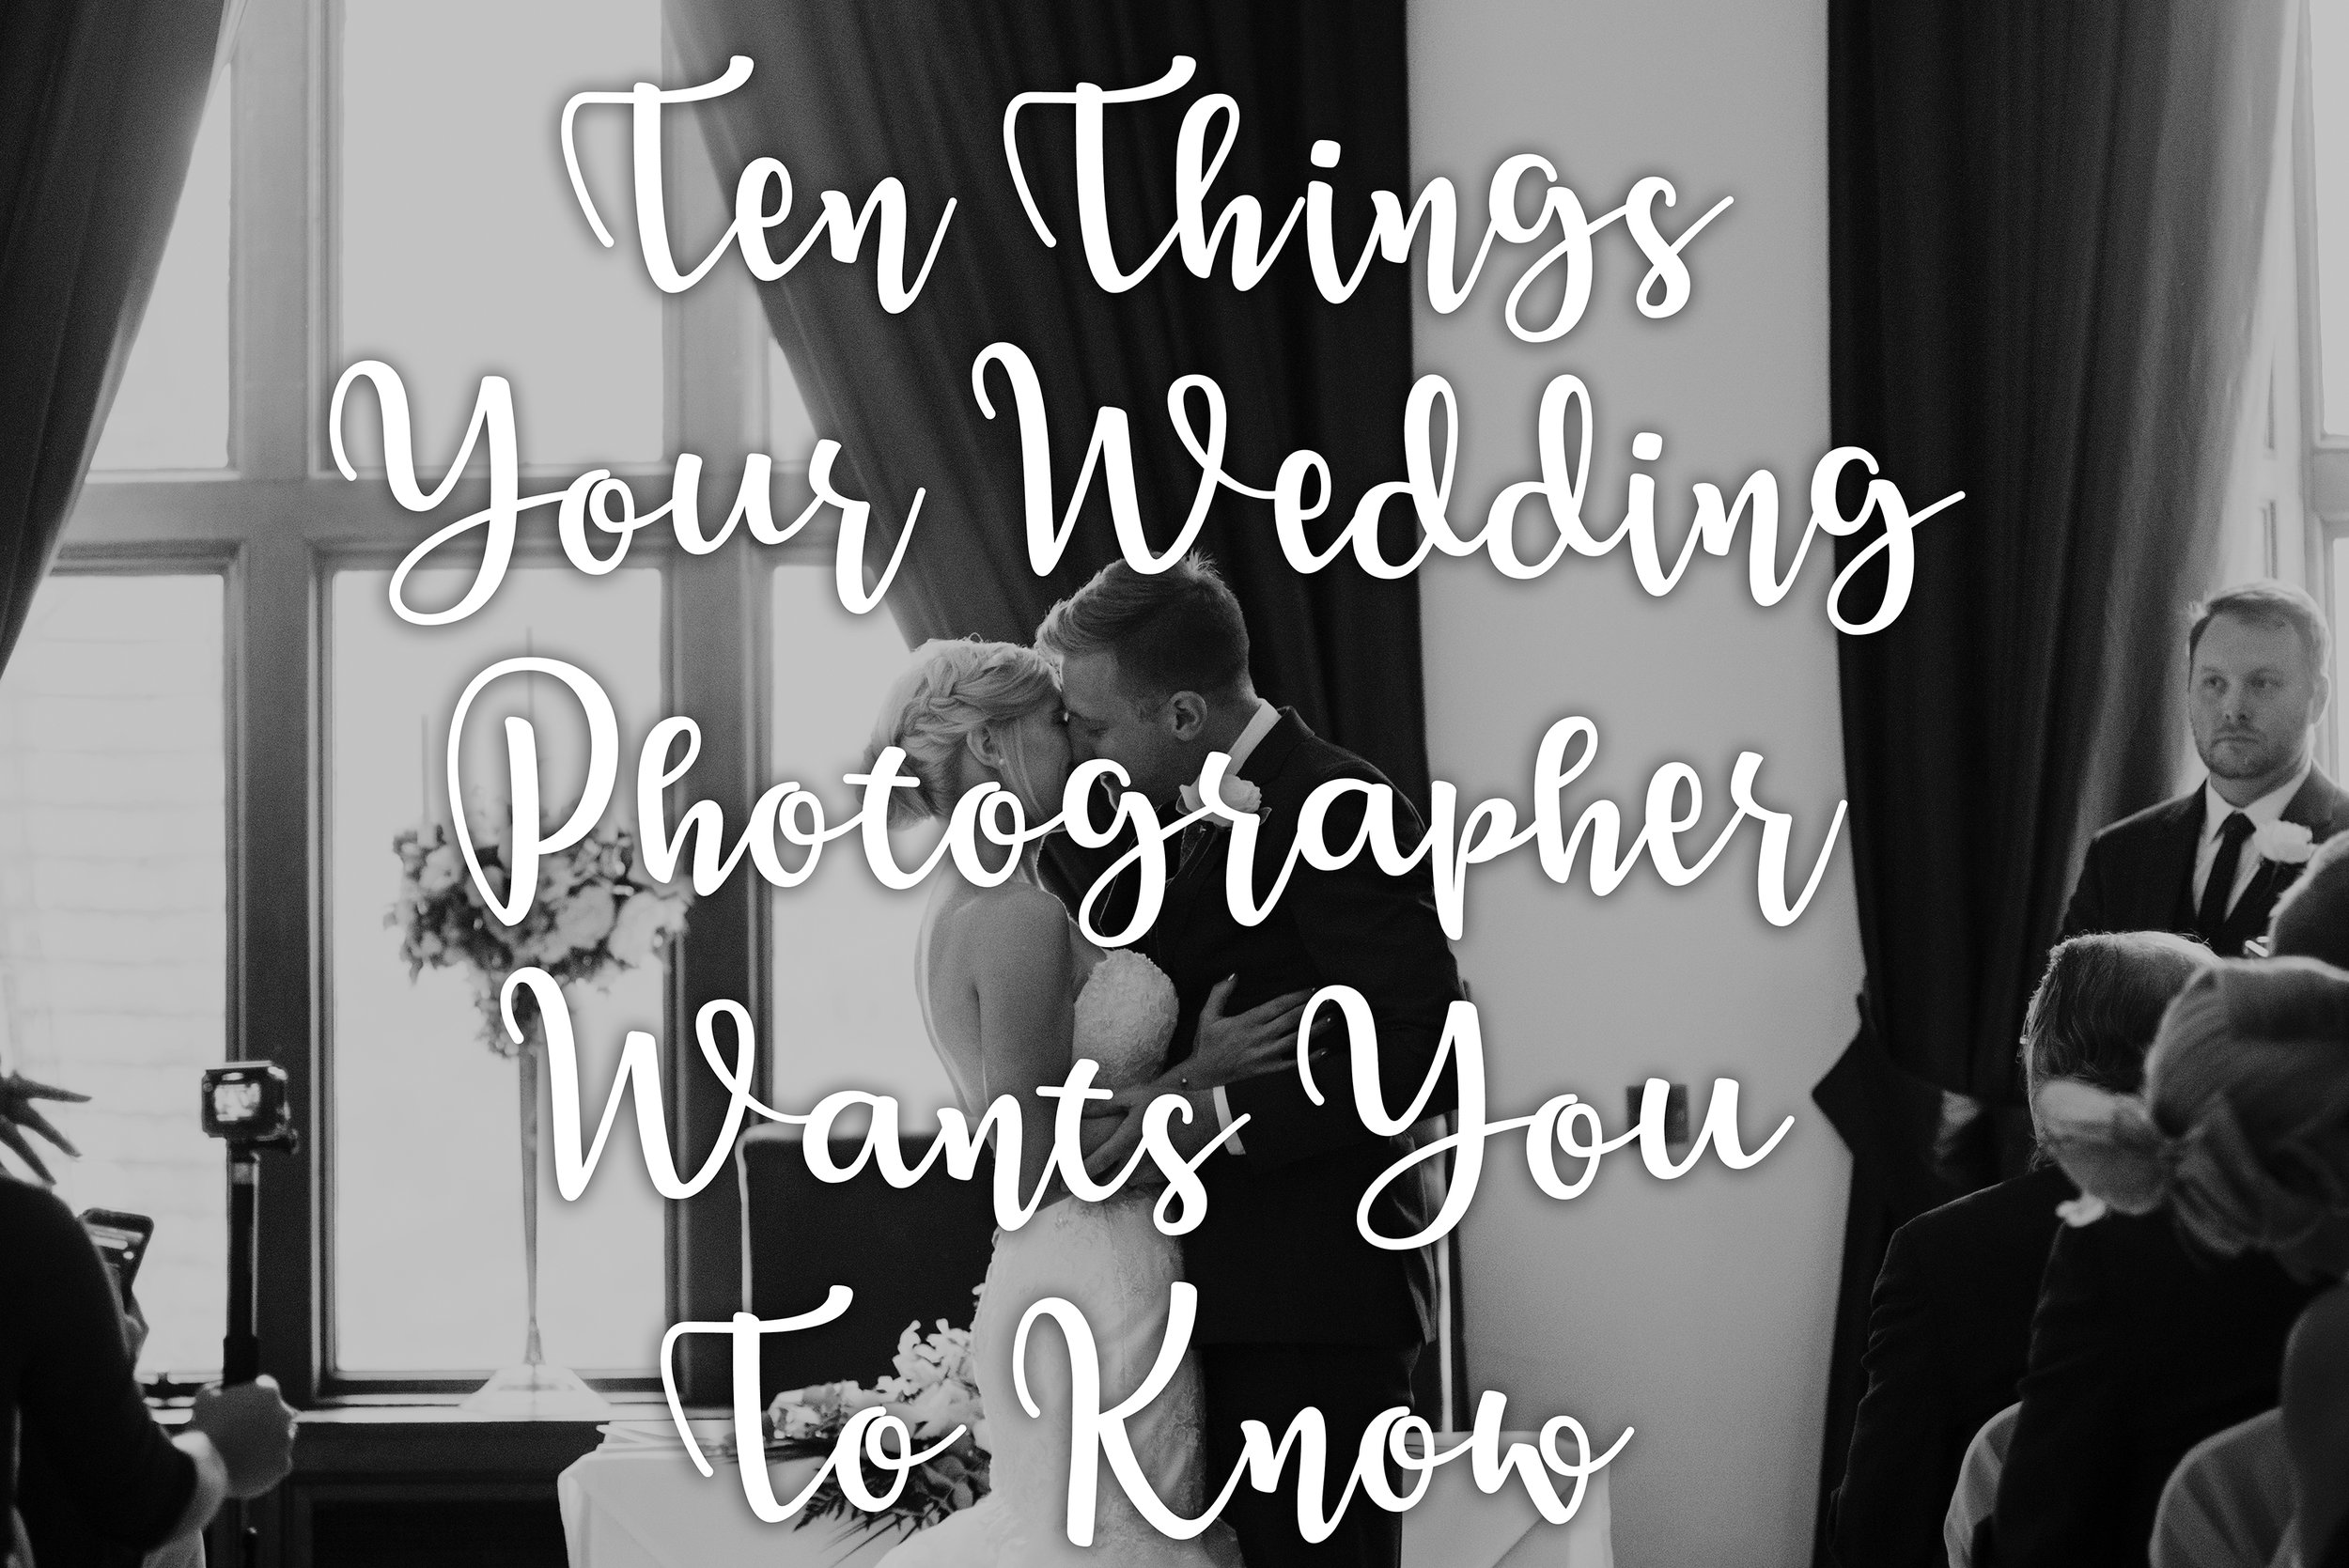 LGEmerick, 10 Things Your Wedding Photographer Wants You To Know